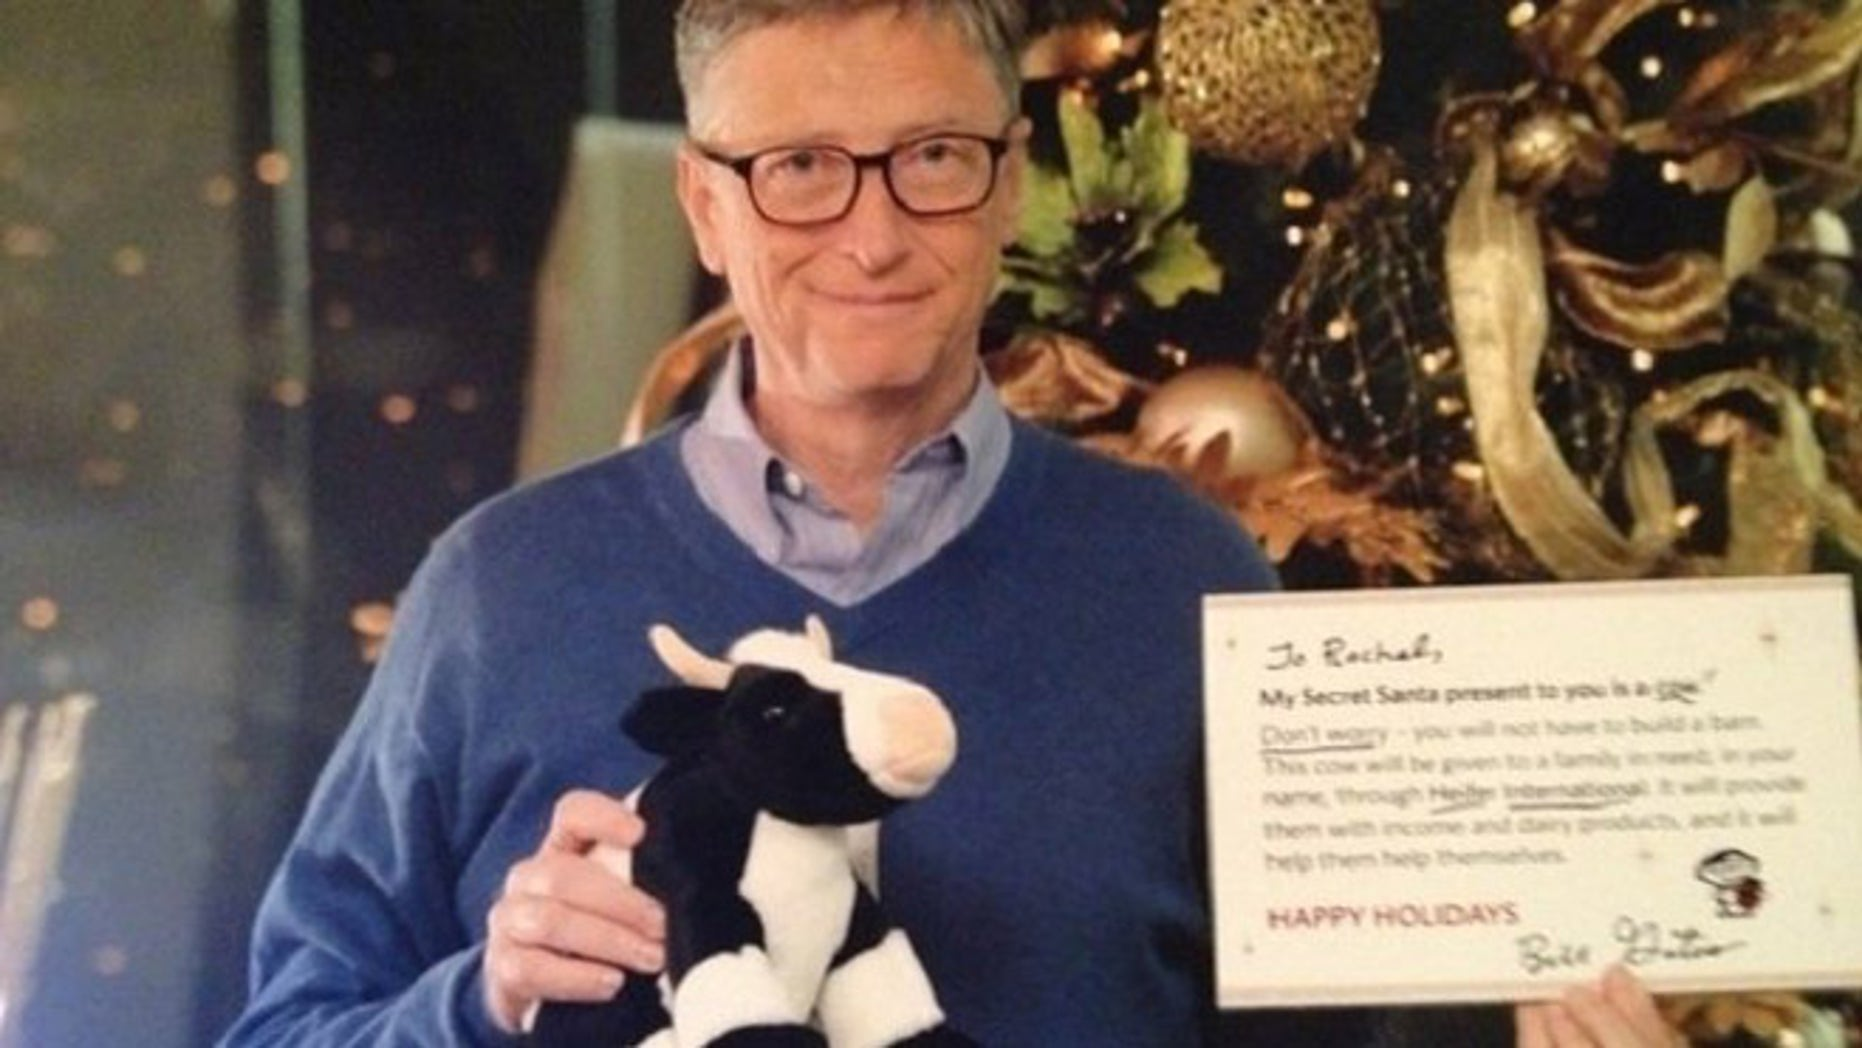 Reddit user Rachel was shocked to learn that Bill Gates was her Secret Santa. He made a donation on her behalf to Heifer International, plus gave her a stuffed cow and a book.